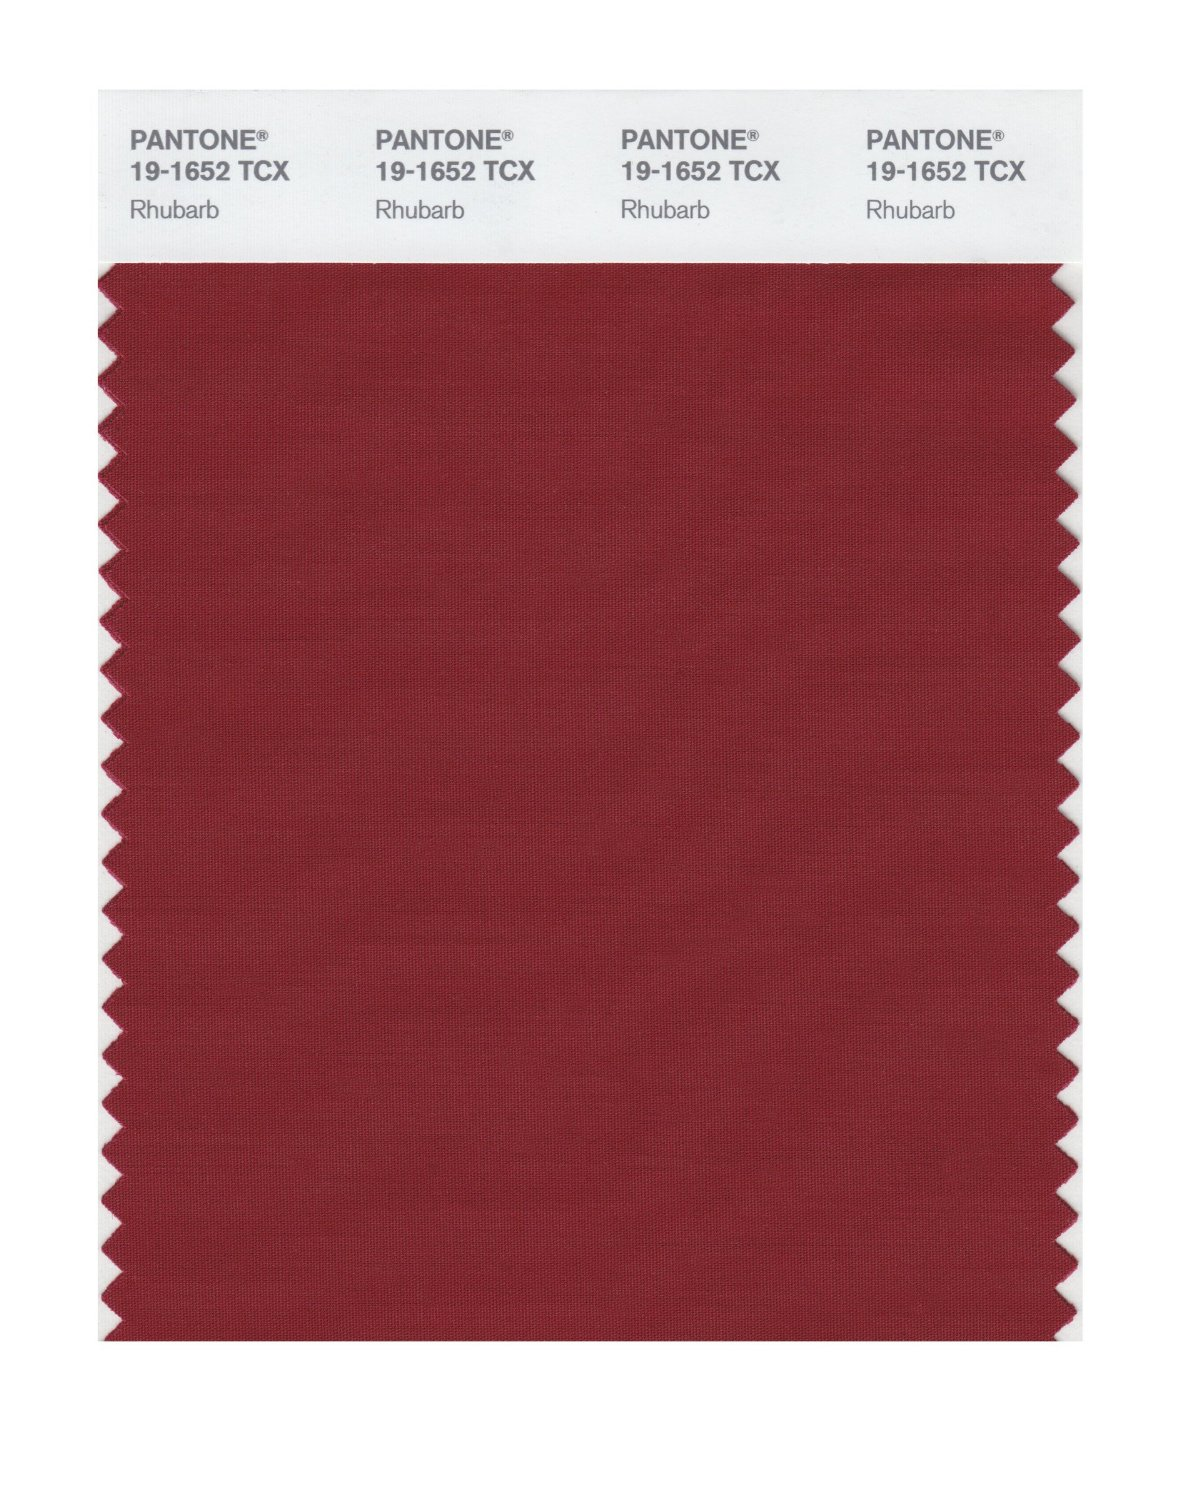 Pantone Smart Swatch 19-1652 Rhubarb